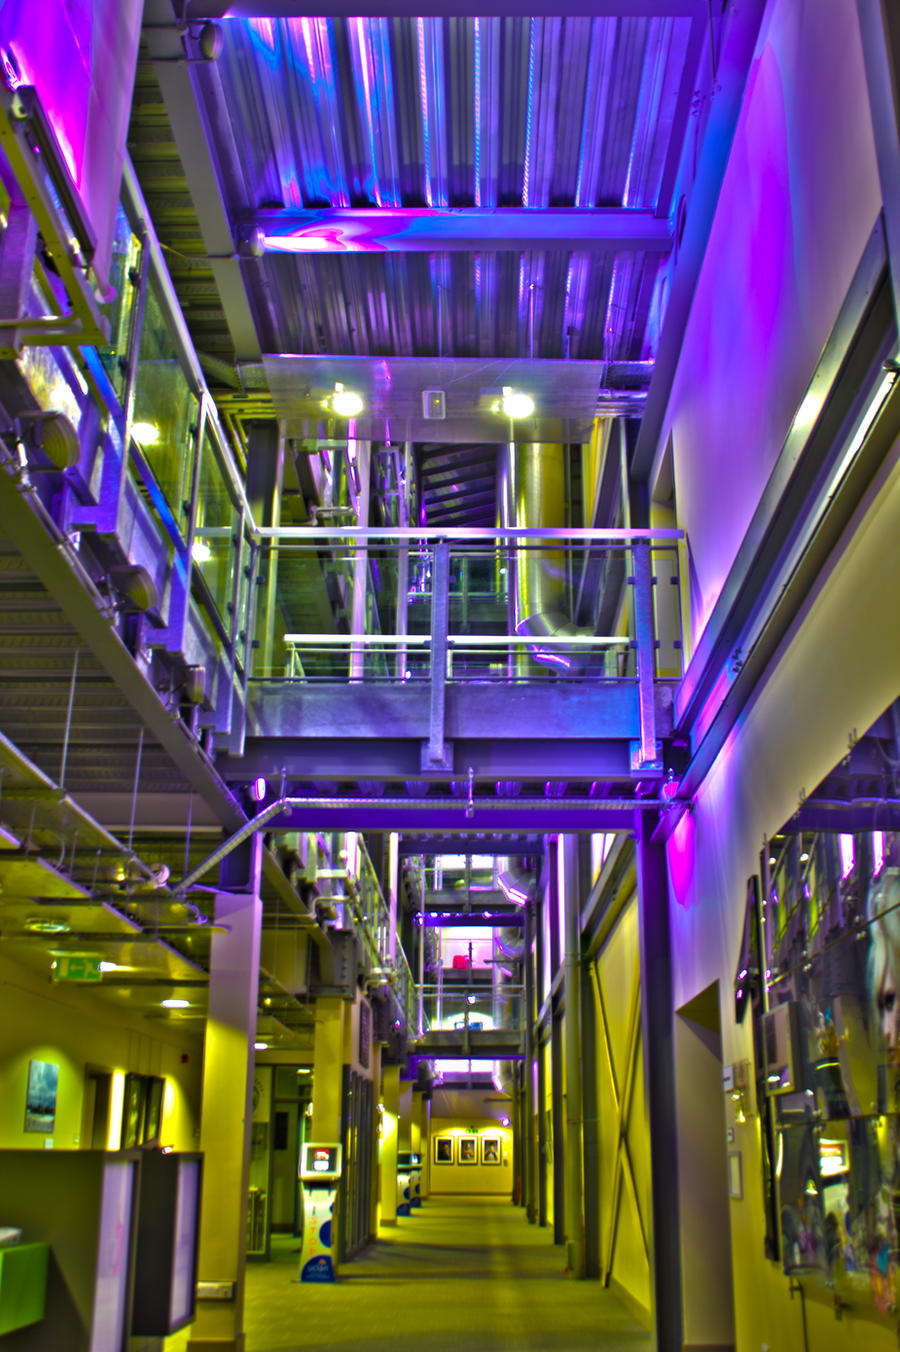 HDR Media Factory UCLan #2 by ScarlettPhotography